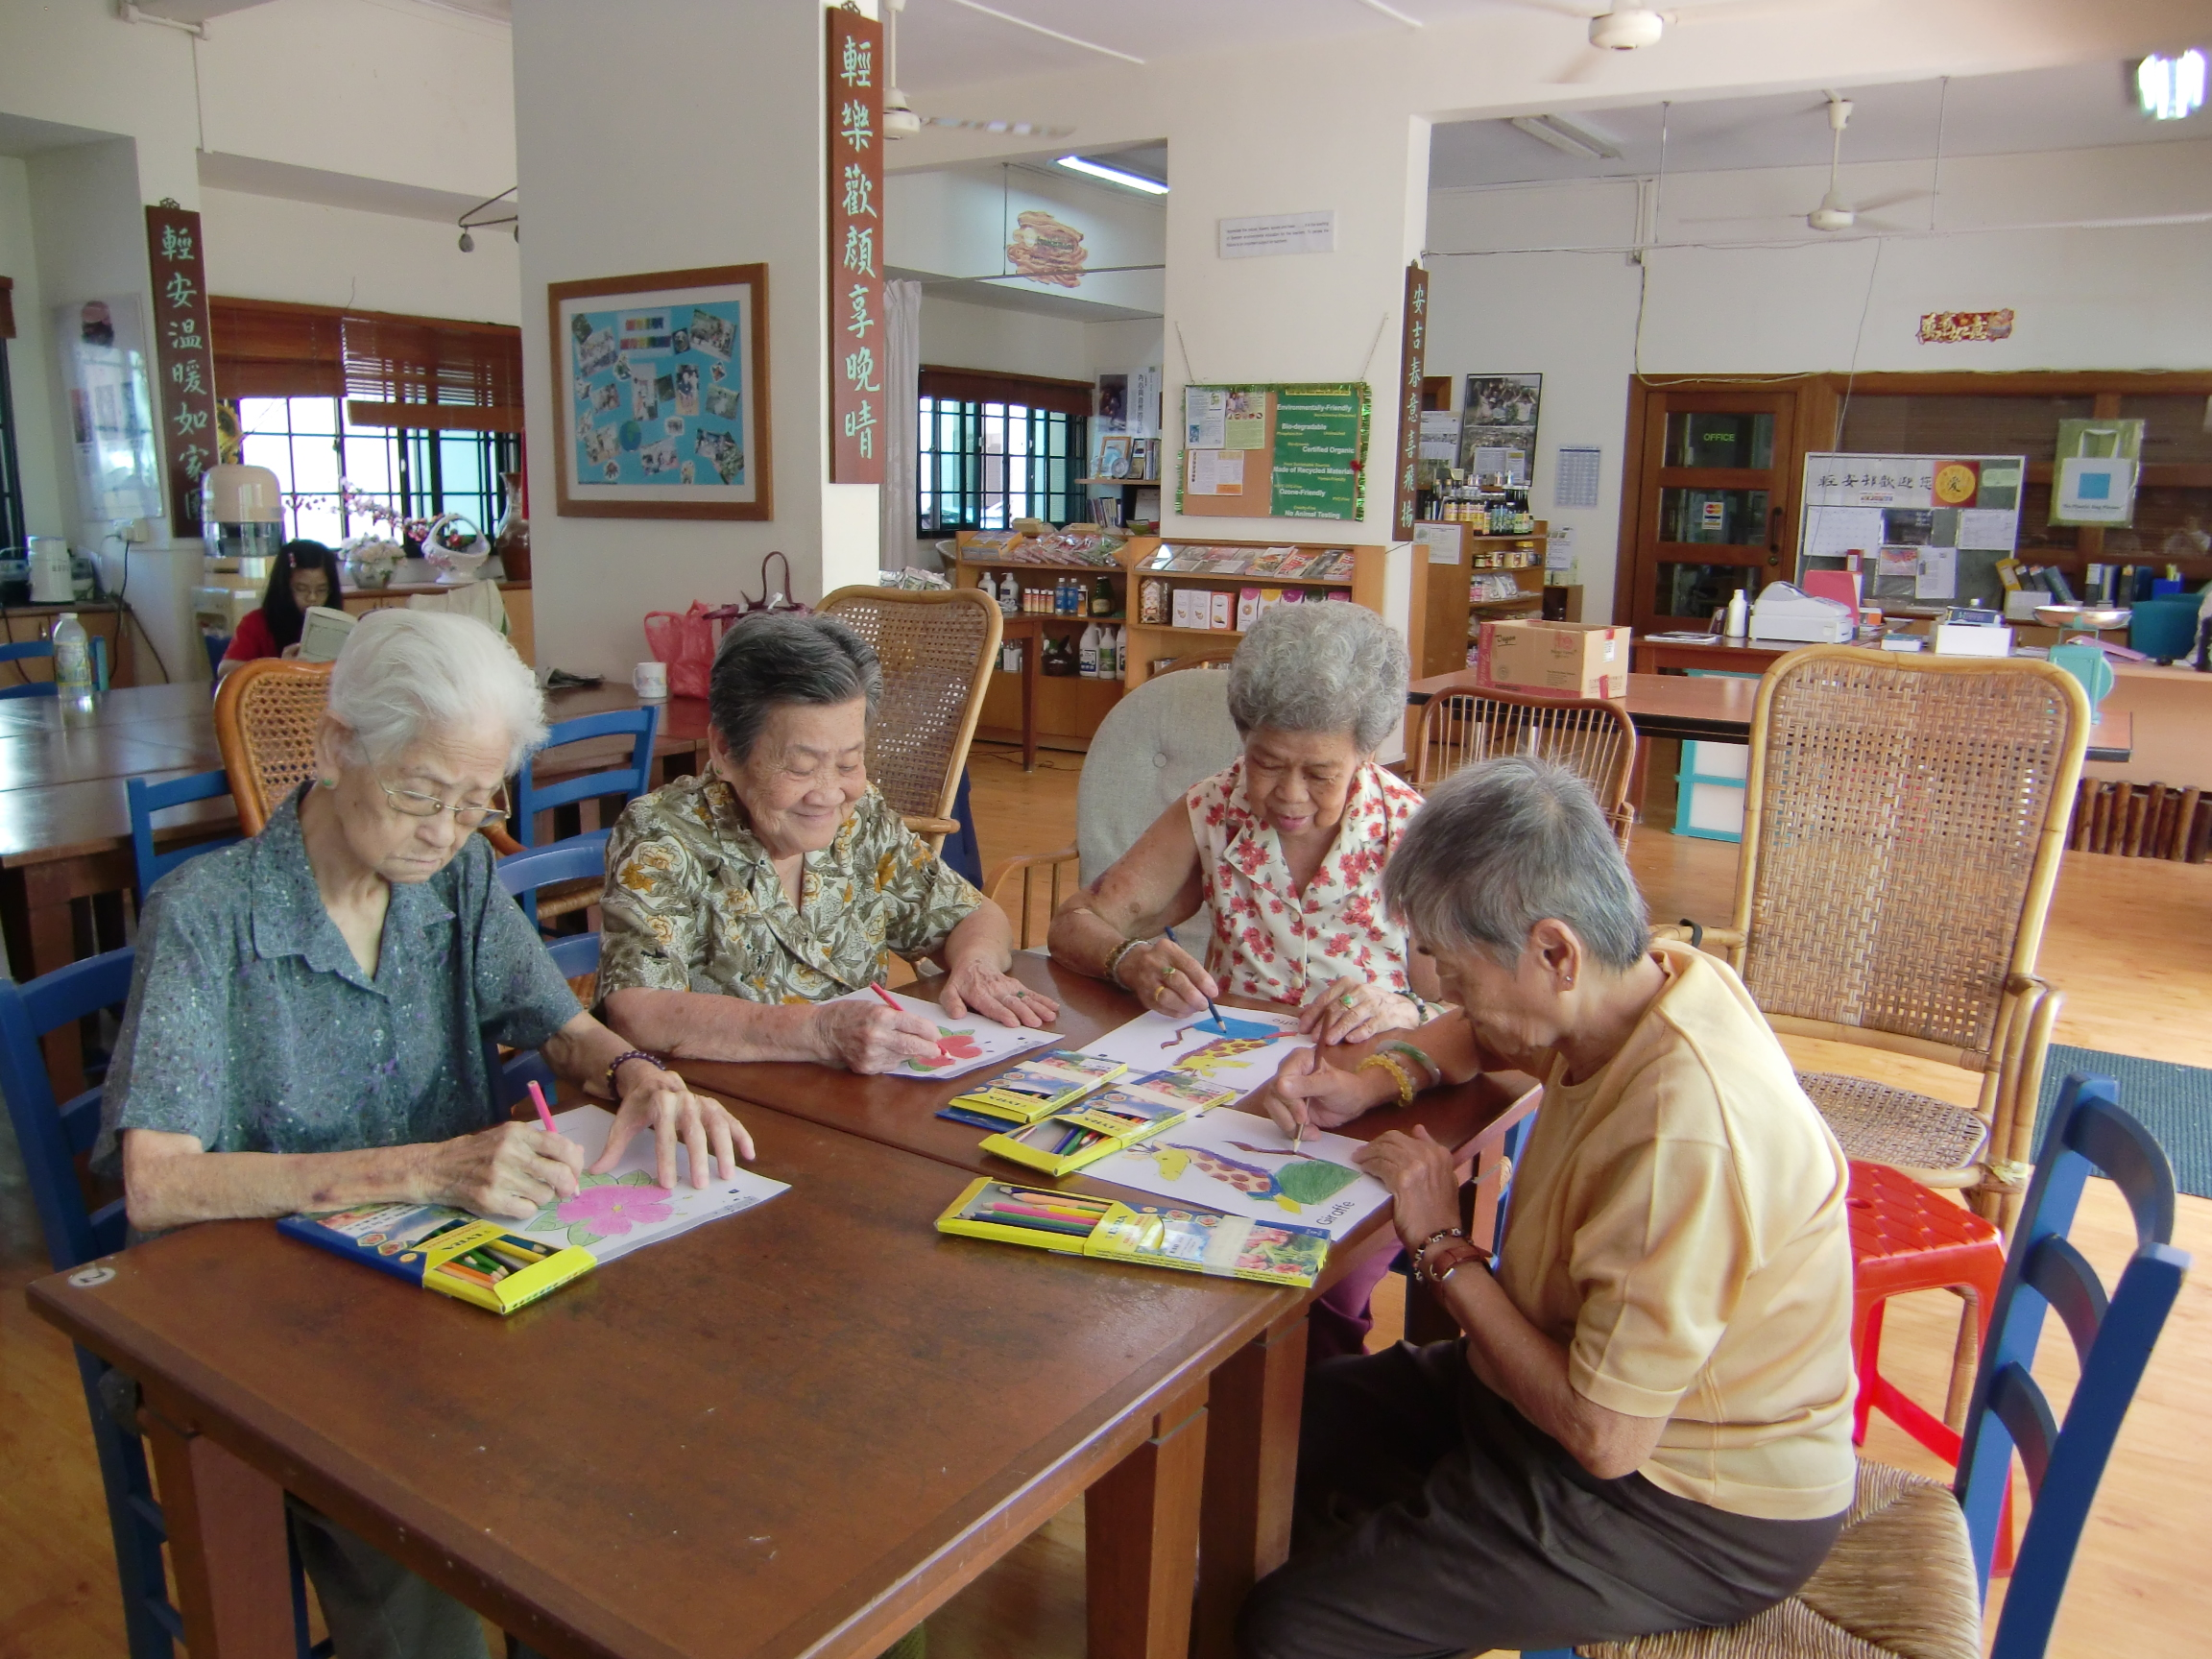 warmhearts elderly care center Search the history of over 338 billion web pages on the internet.